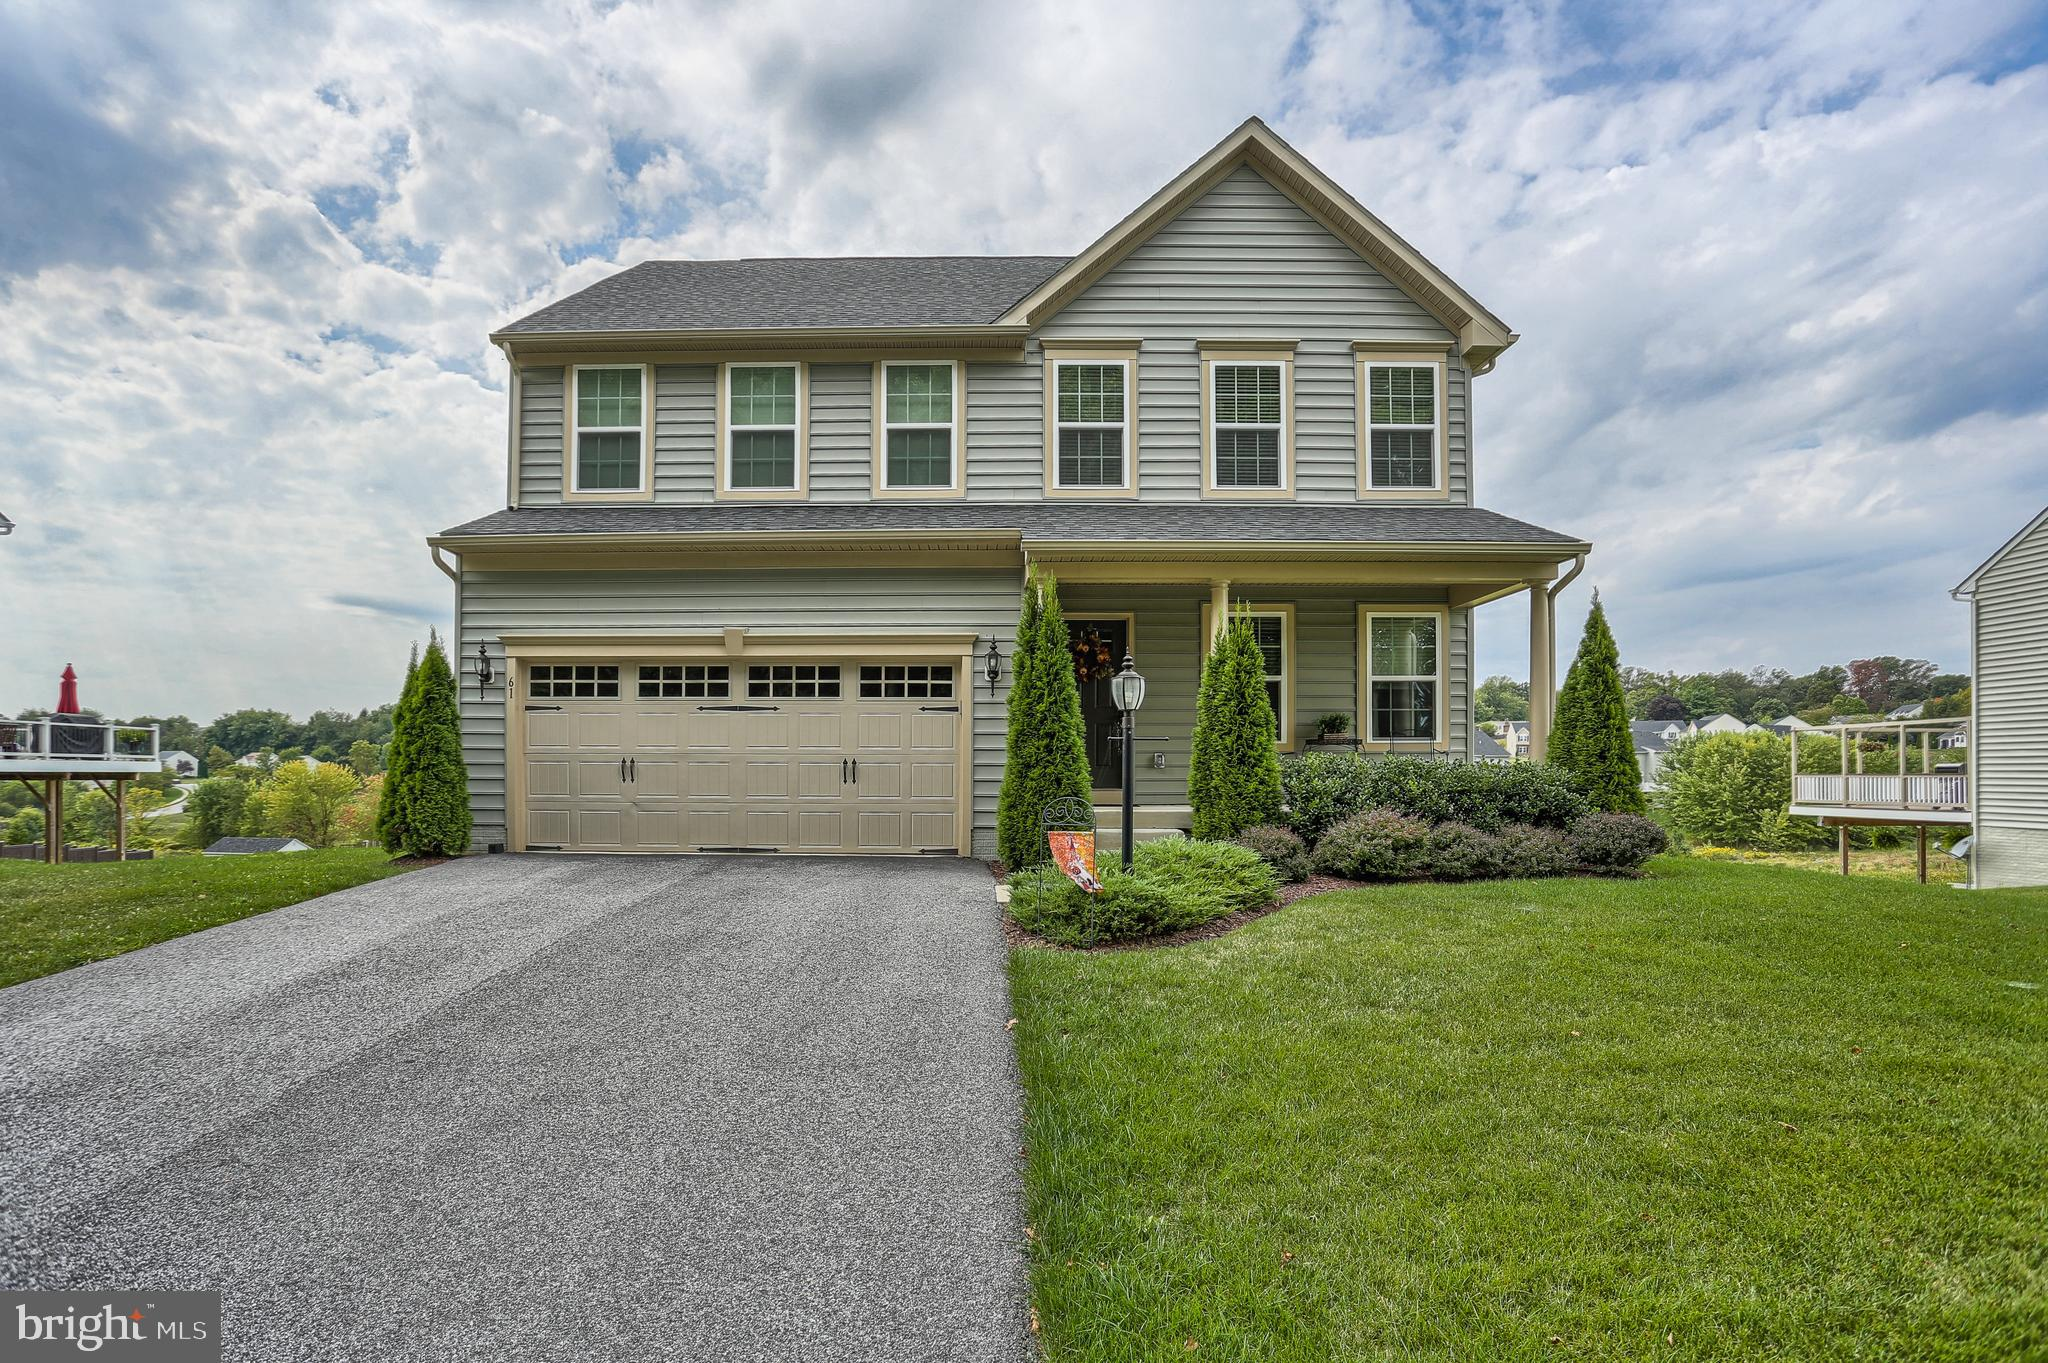 61 HUNT RUN DRIVE, NEW FREEDOM, PA 17349